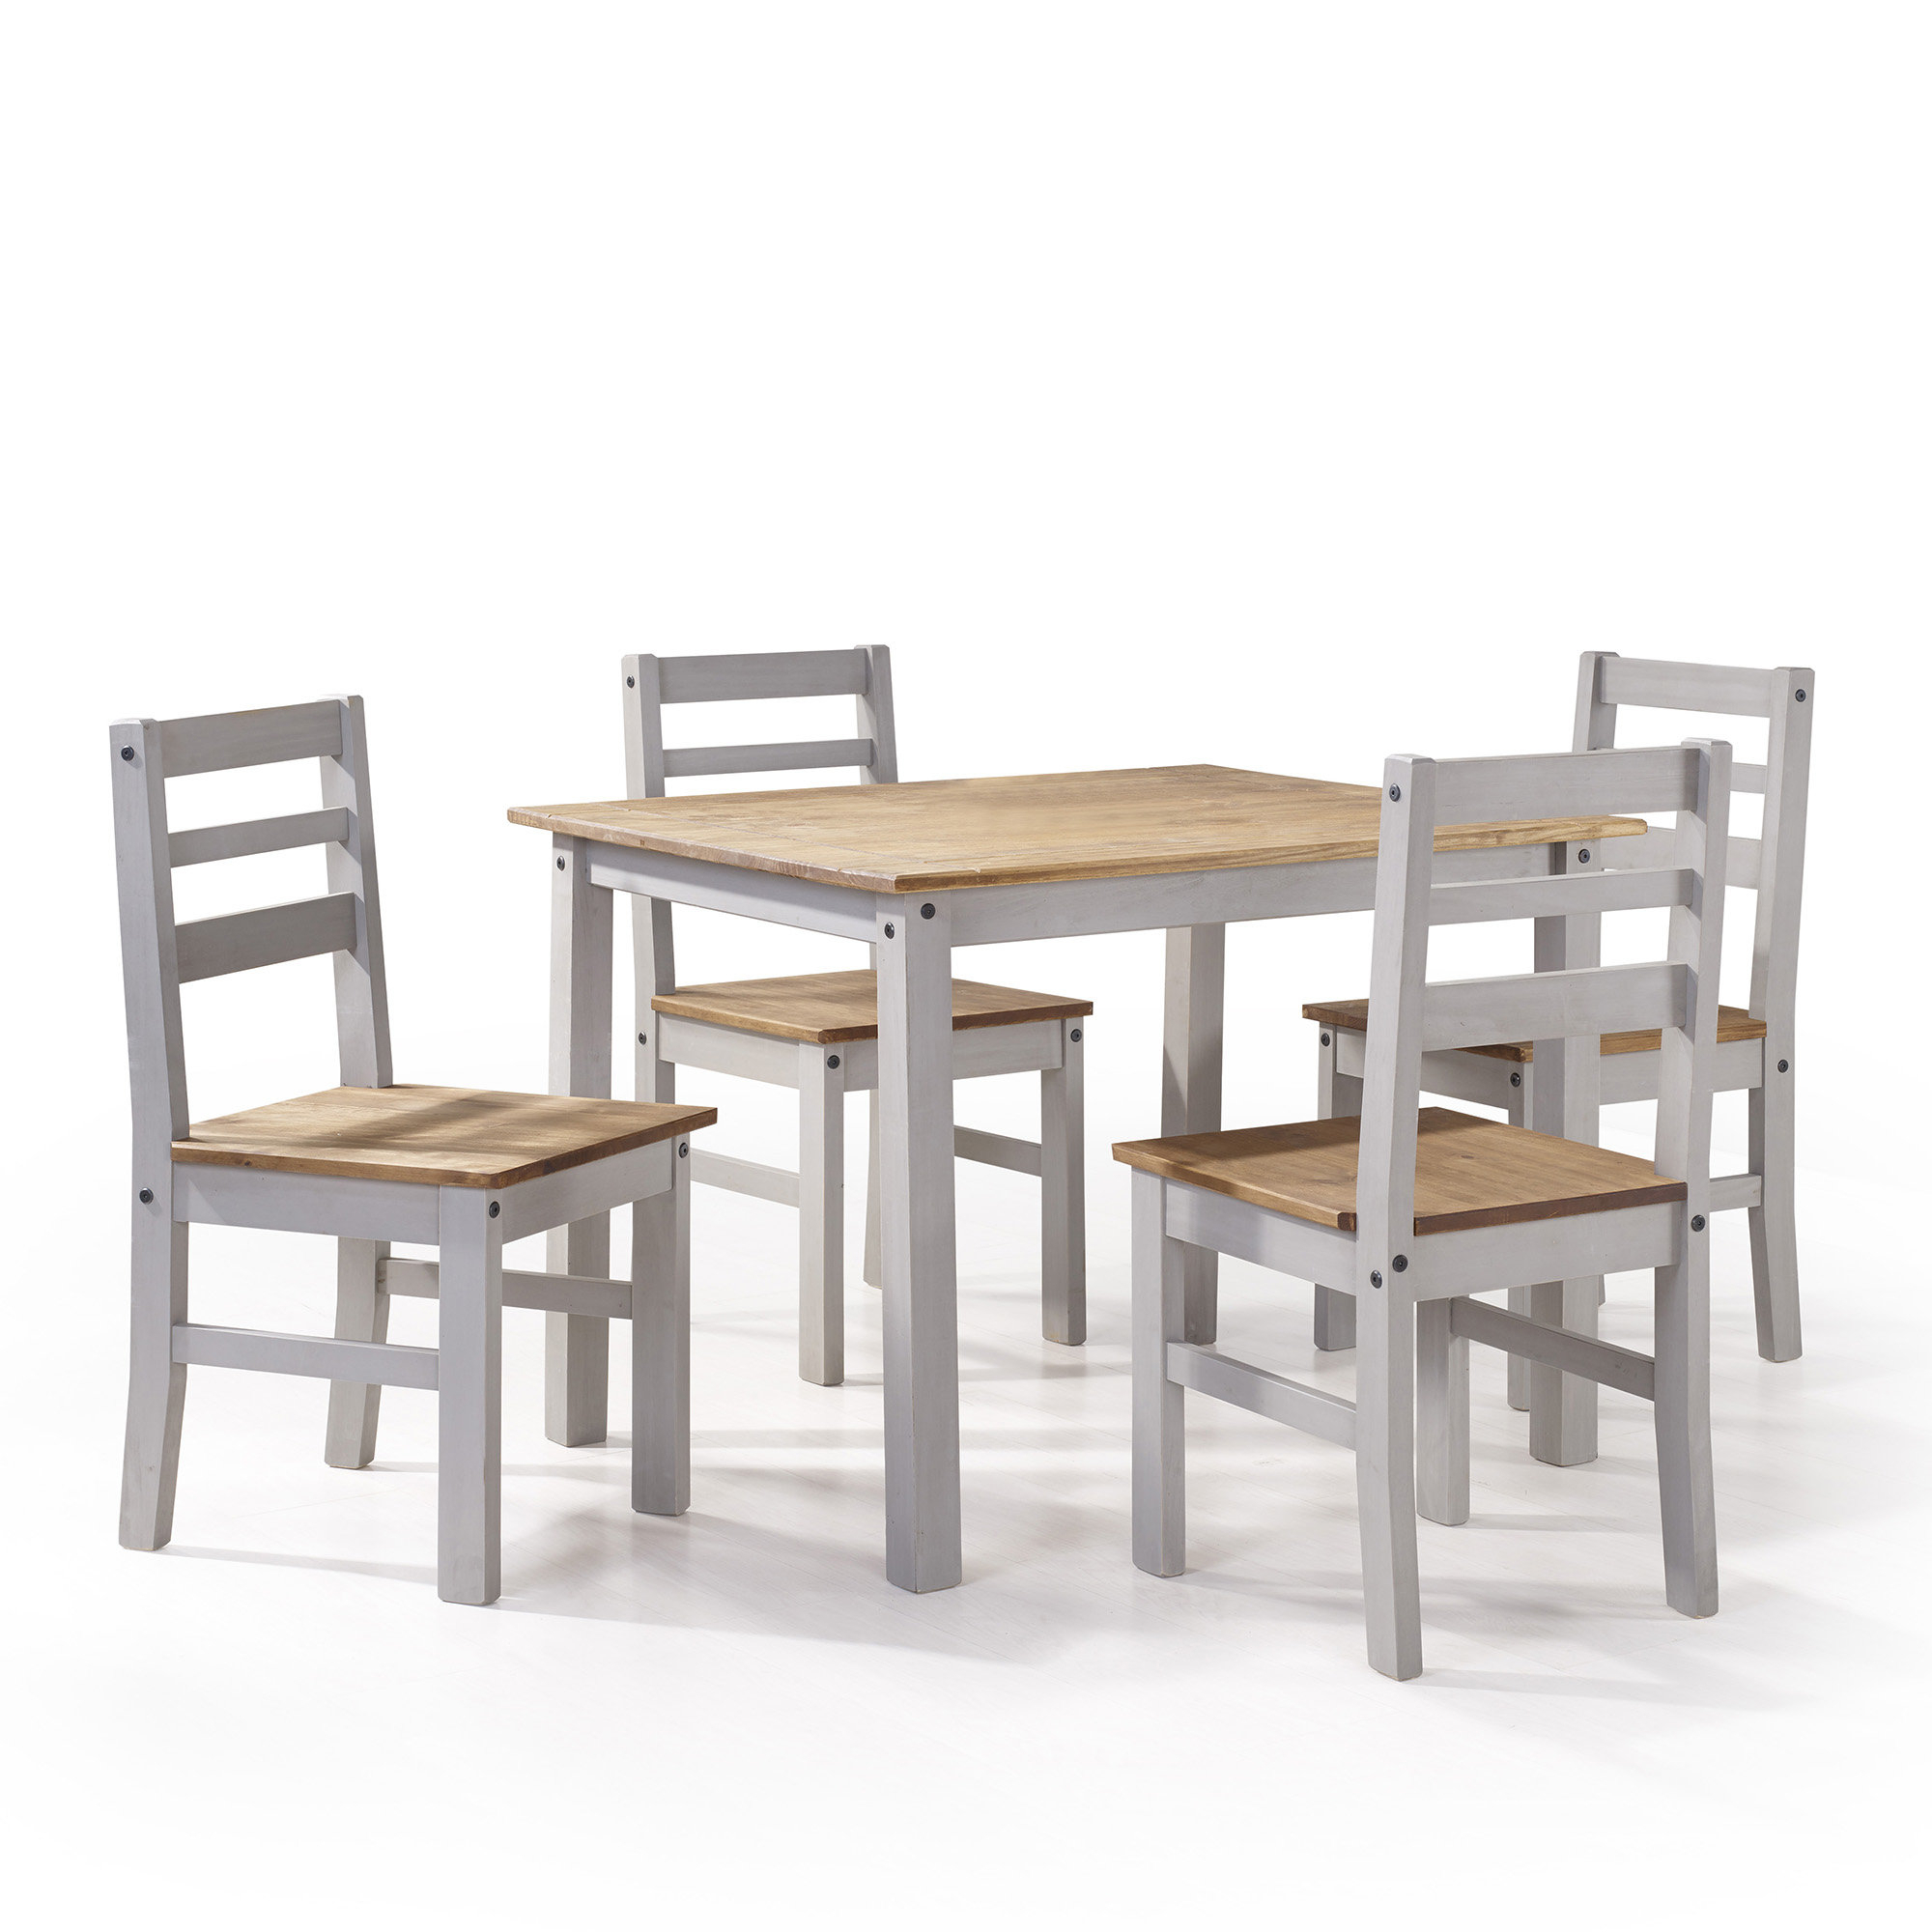 Sundberg 5 Piece Solid Wood Dining Sets Within Well Known Gracie Oaks Robin 5 Piece Solid Wood Dining Set & Reviews (View 5 of 25)